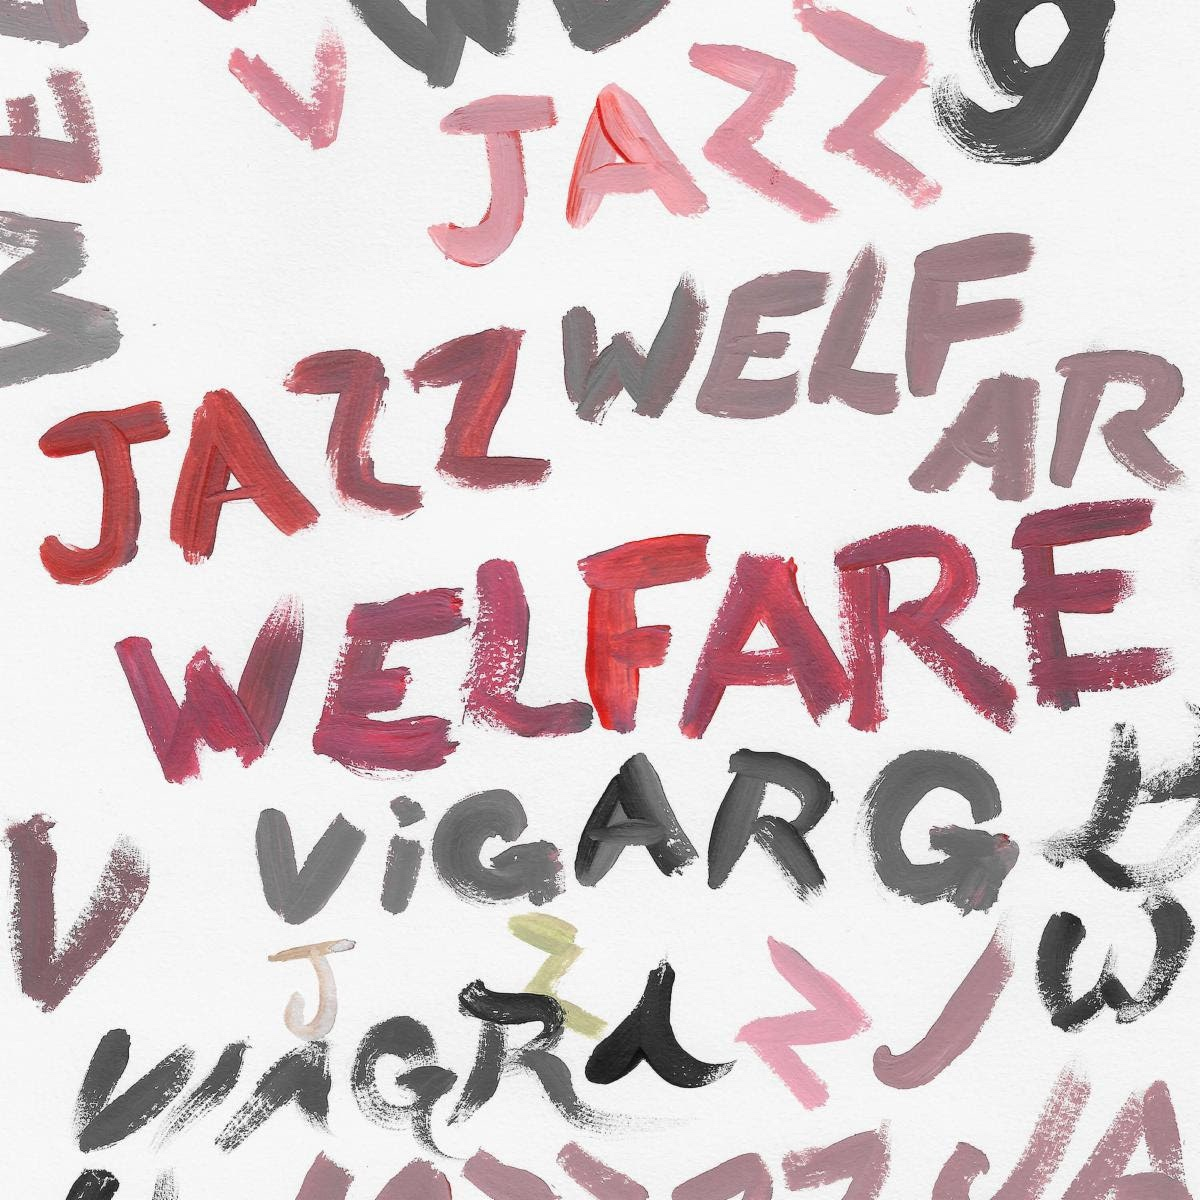 Viagra Boys Tear Themselves Open on Cathartic 'Welfare Jazz'